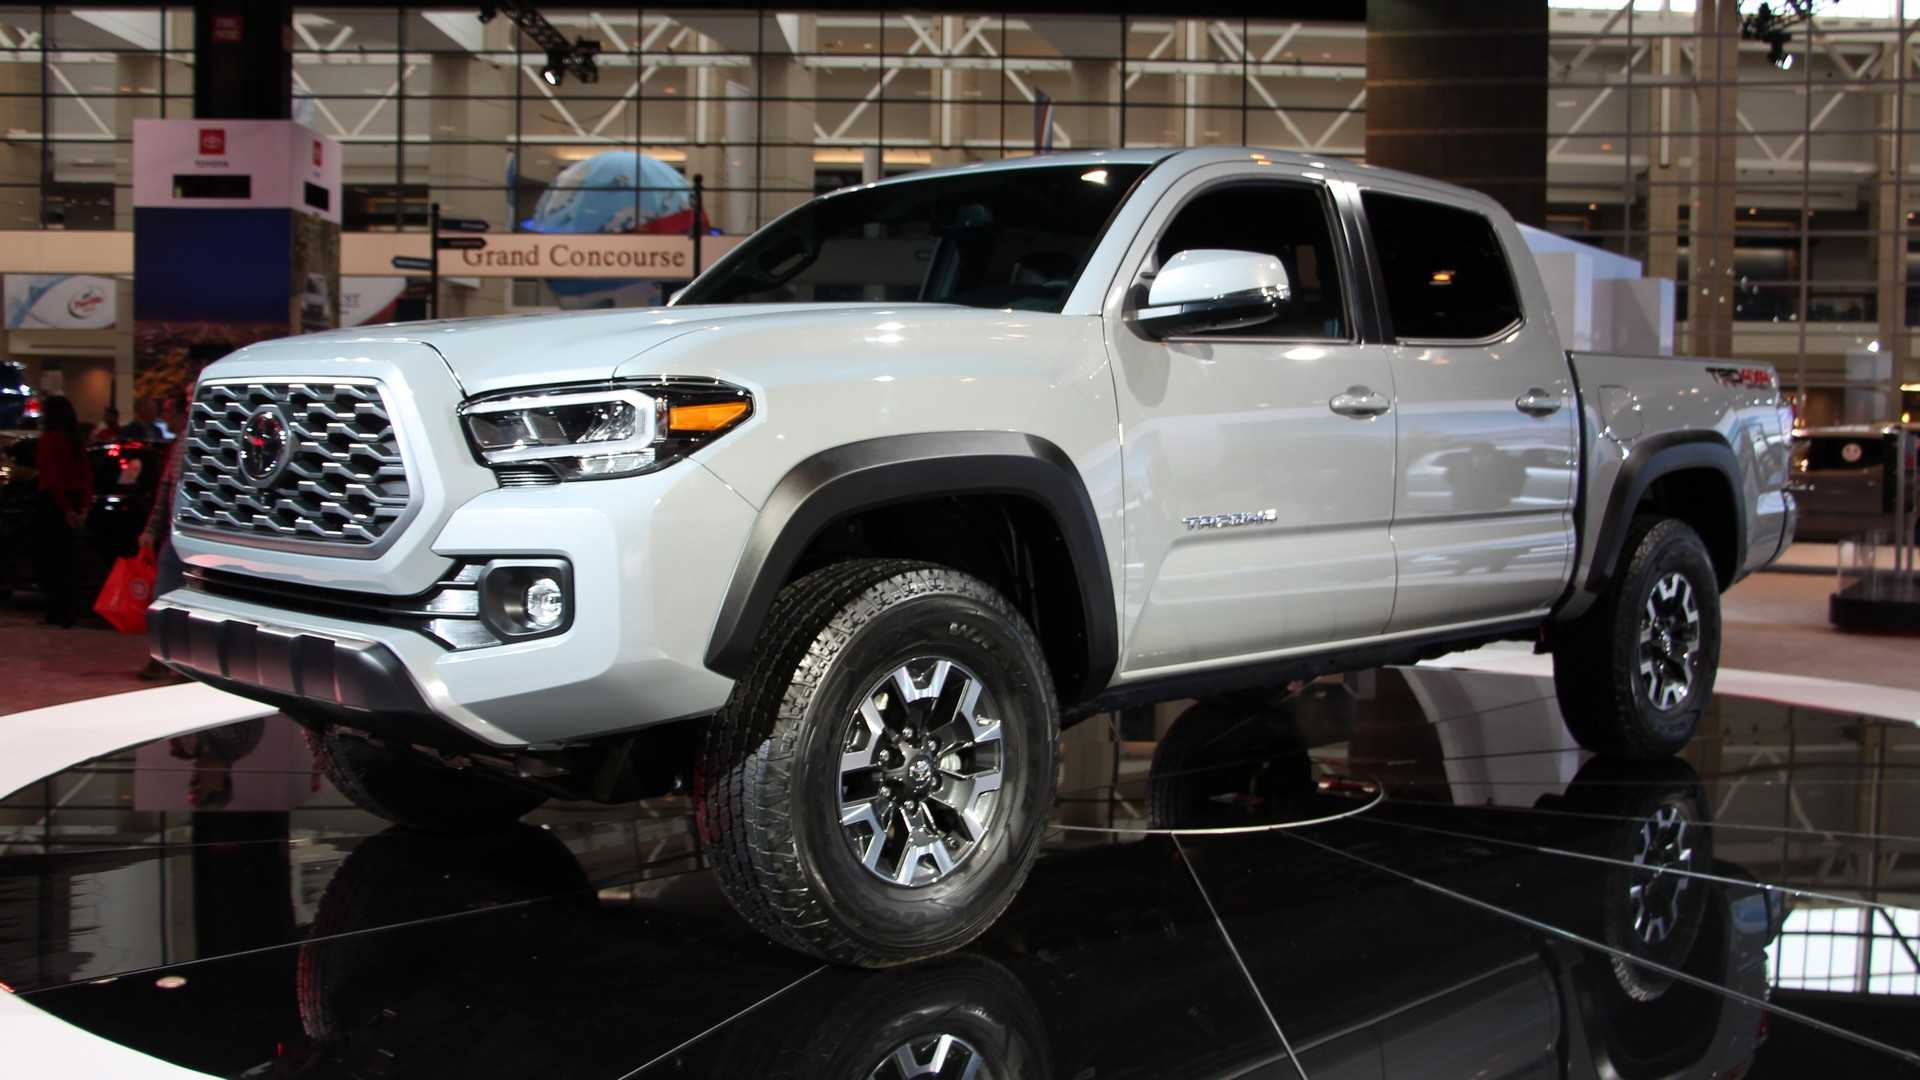 36 All New Toyota Tacoma Trd Pro 2020 Price And Review